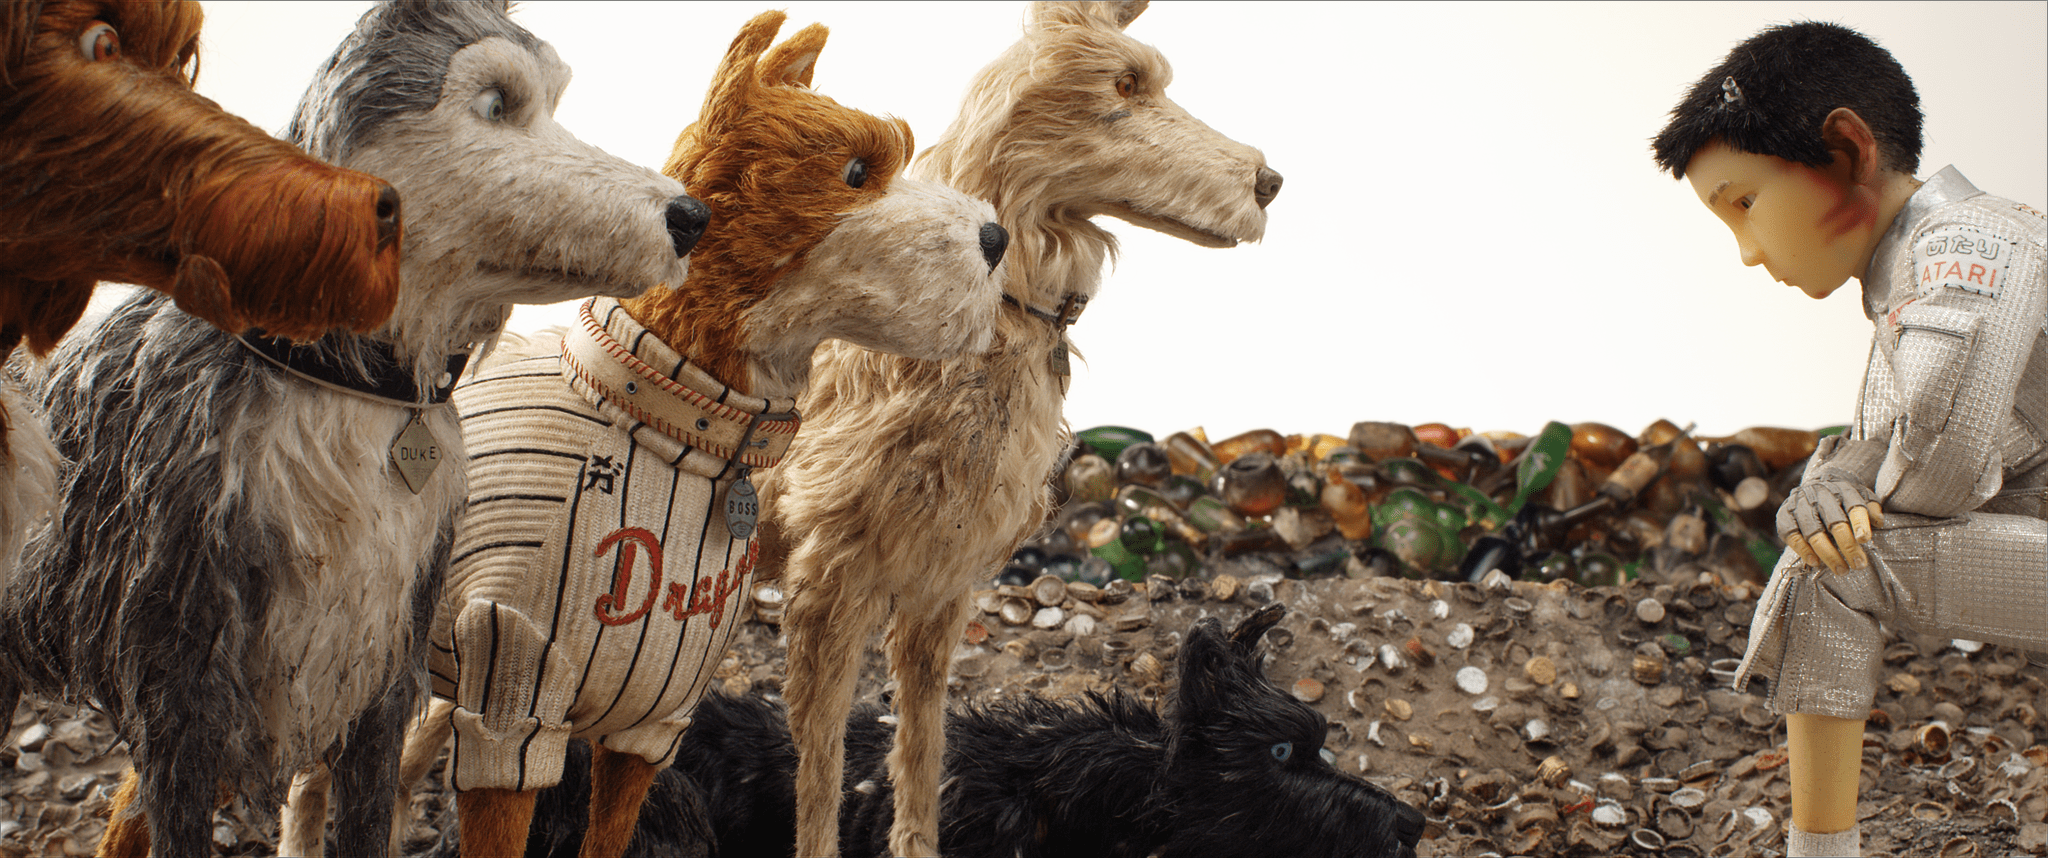 Review | Isle of Dogs (2018)